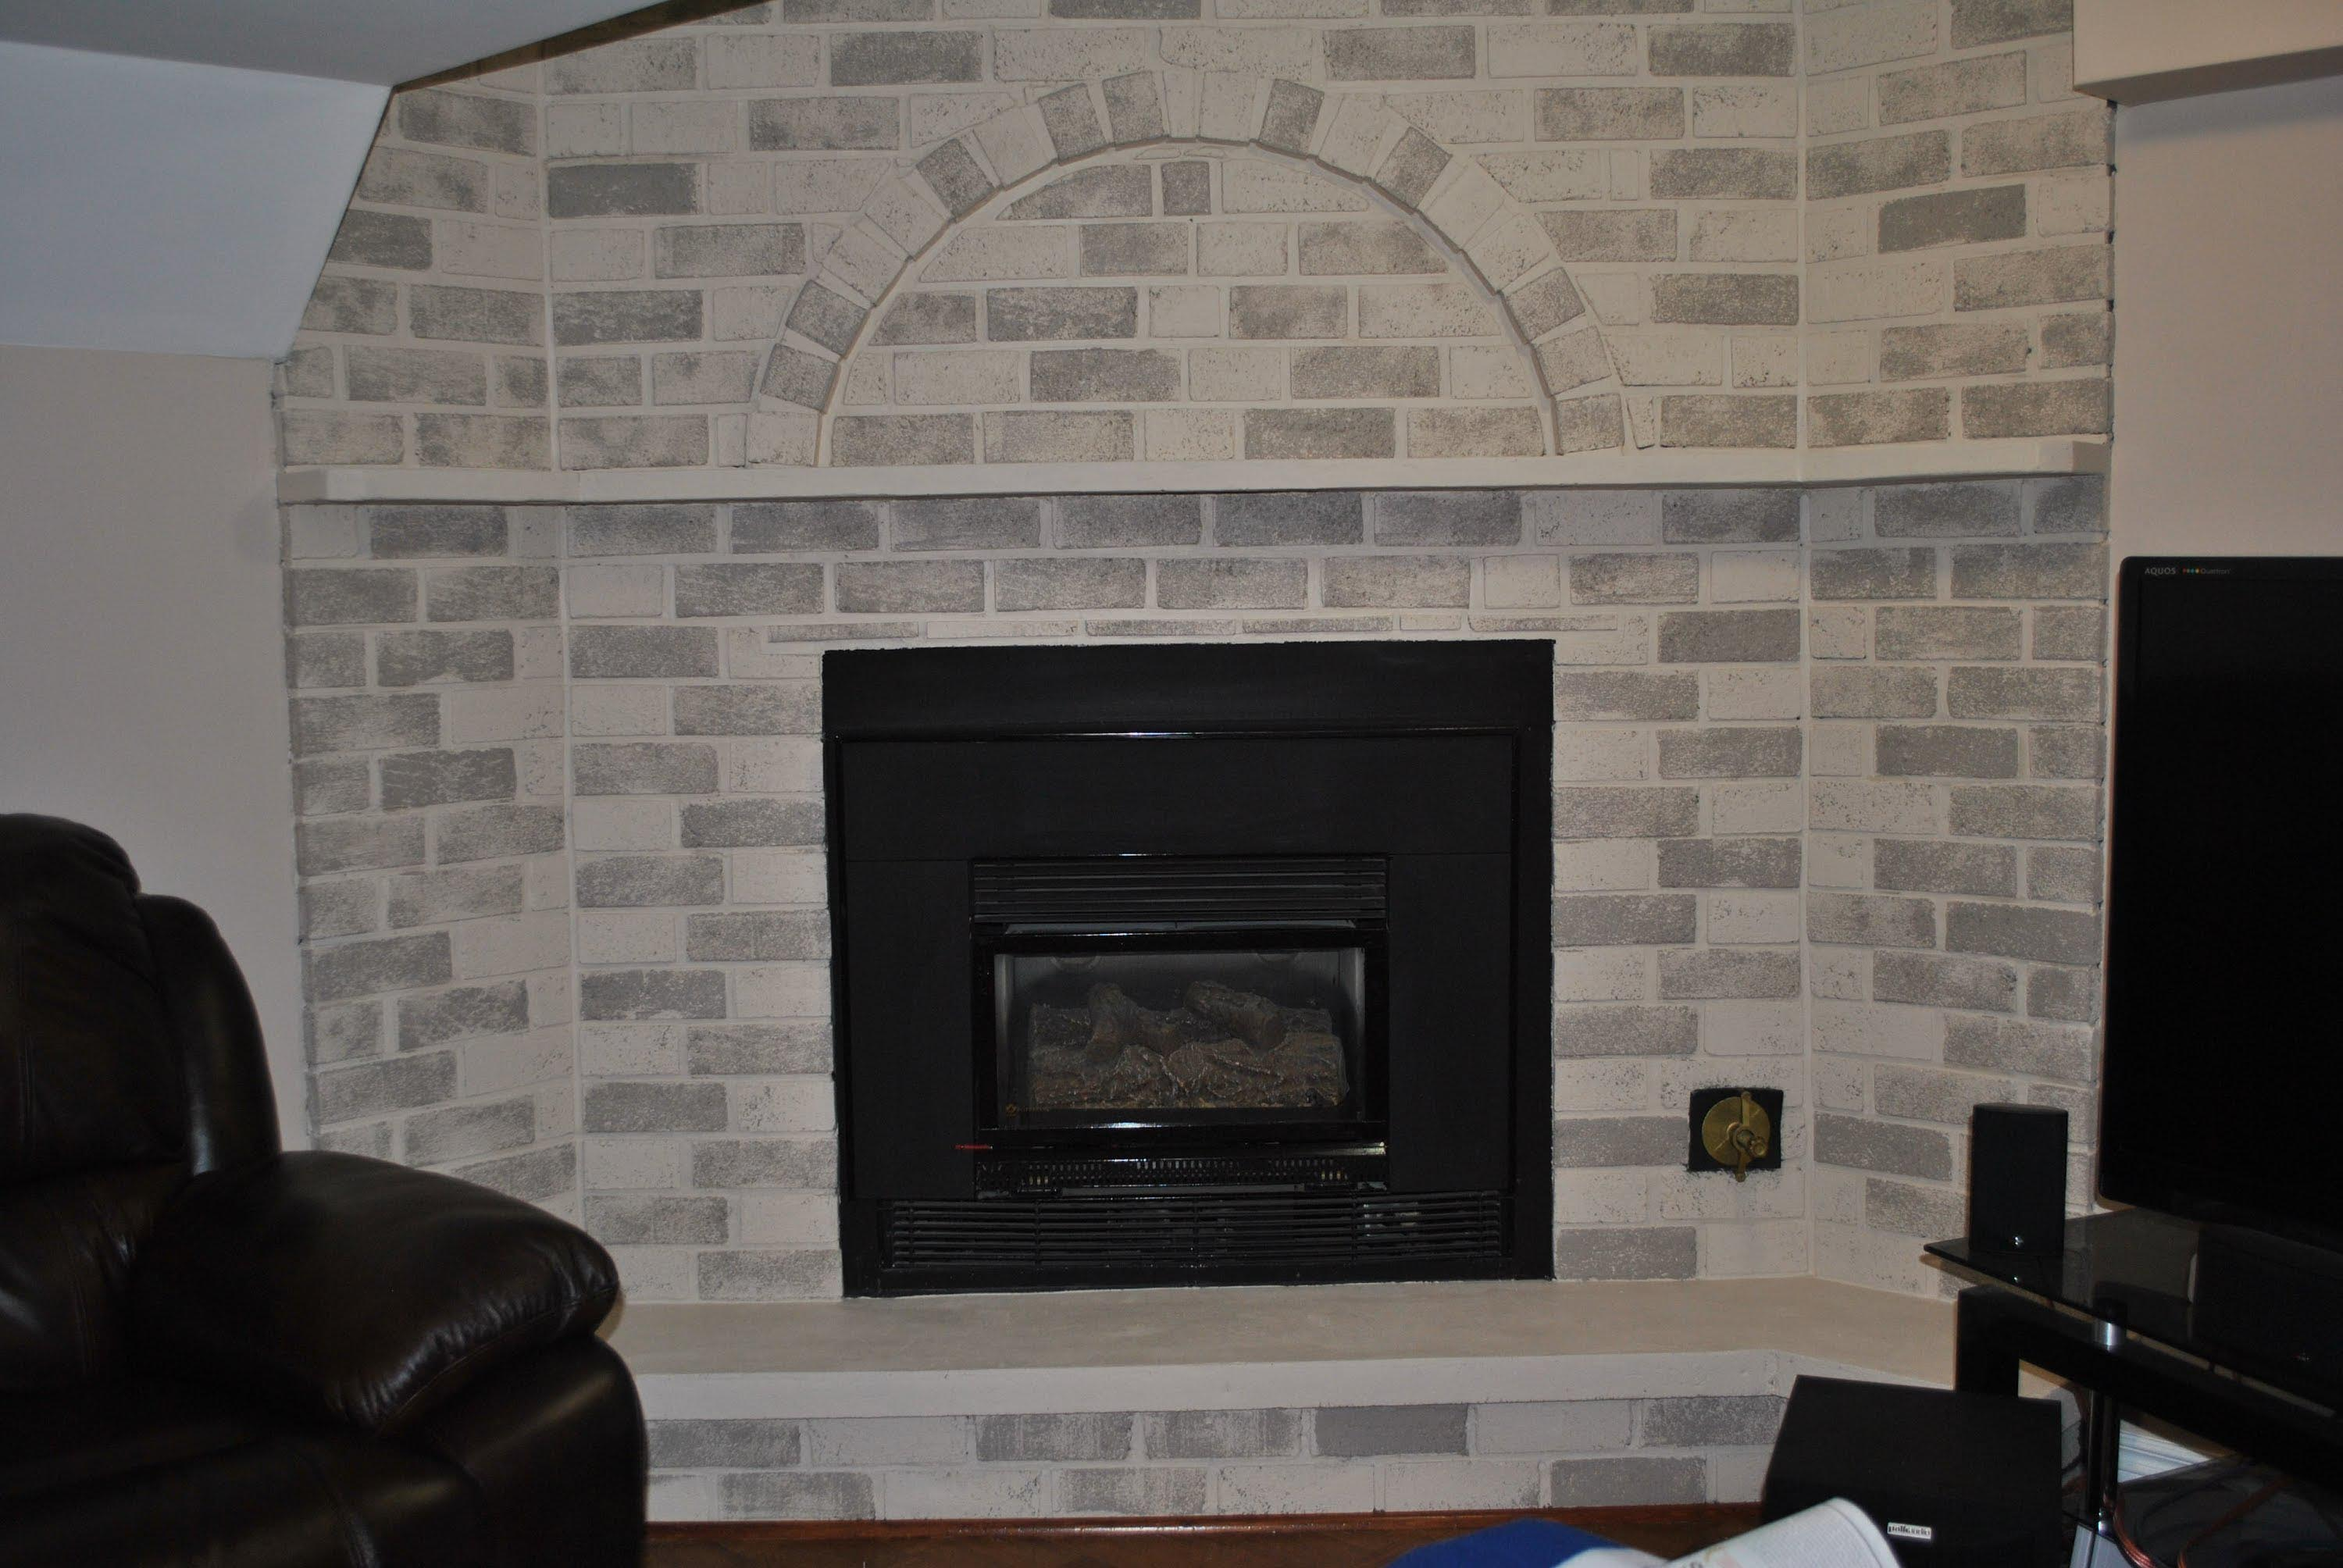 Whitewash Fireplace Before And After Whitewash Brick Fireplace Before And After Fireplace Designs